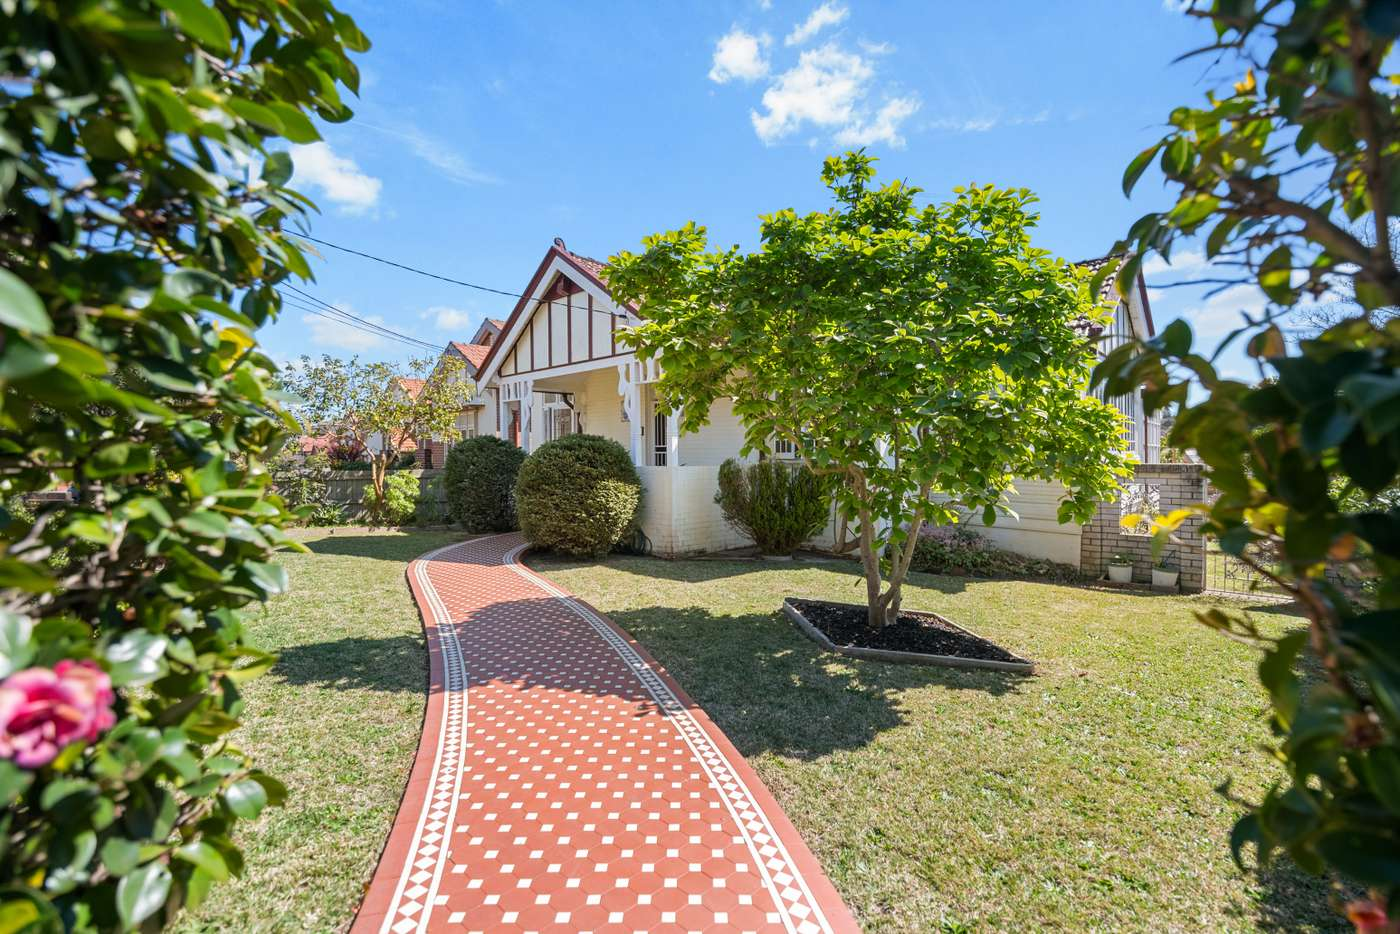 Main view of Homely house listing, 1 Hanks Street, Ashfield NSW 2131